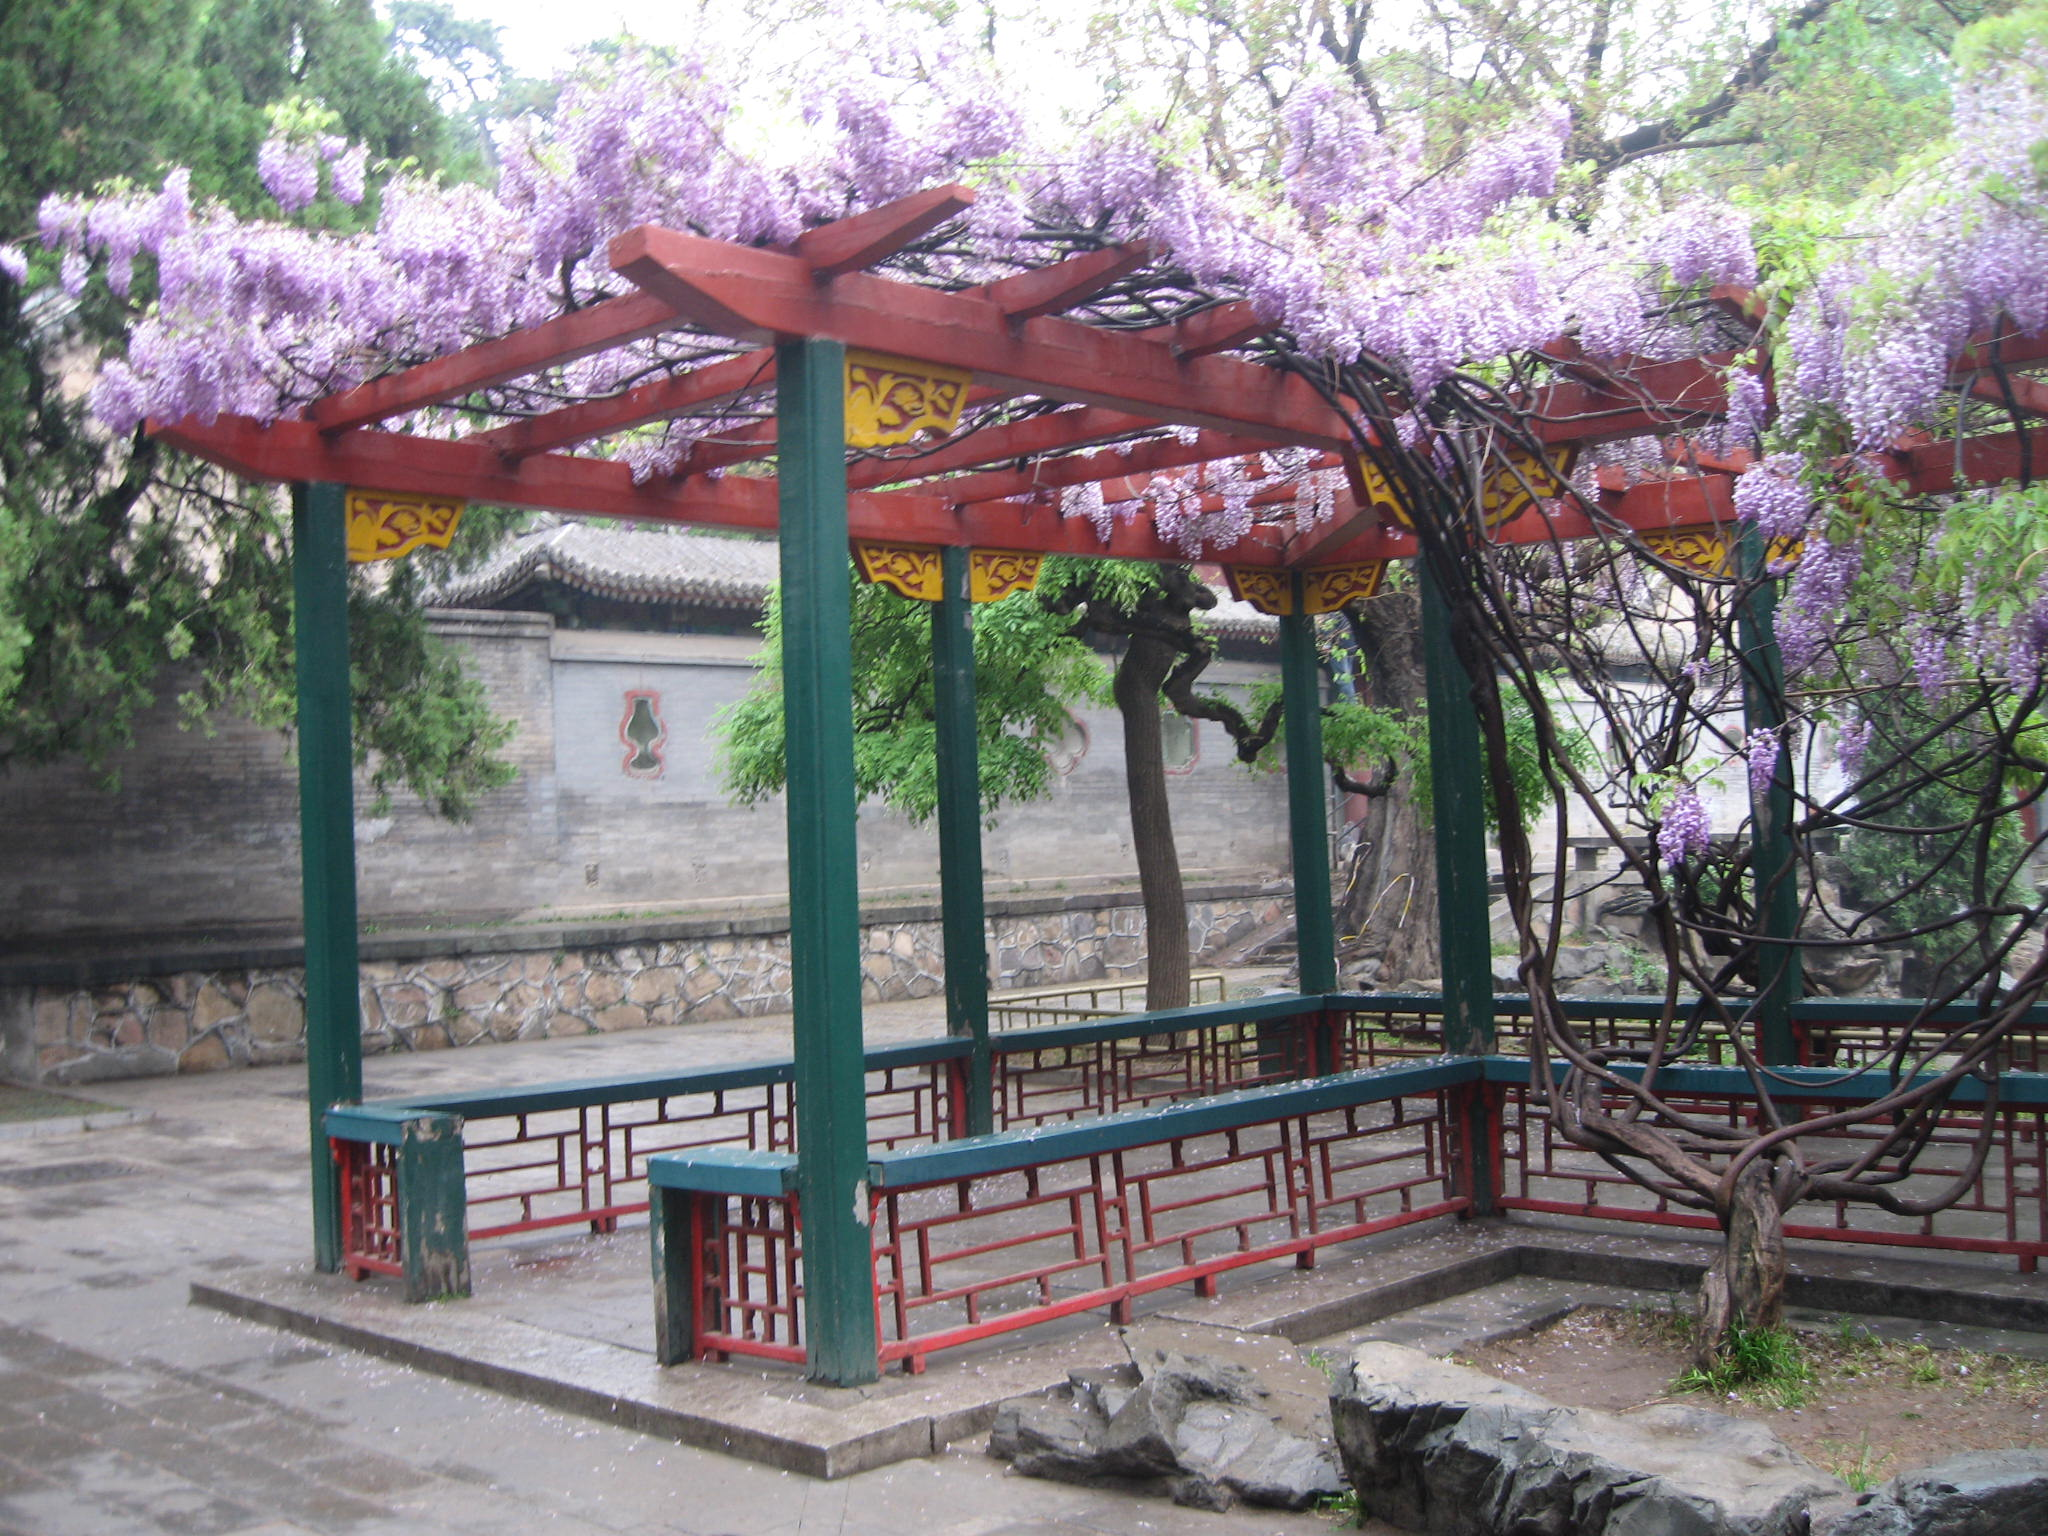 Wisteria in bloom, Beijing